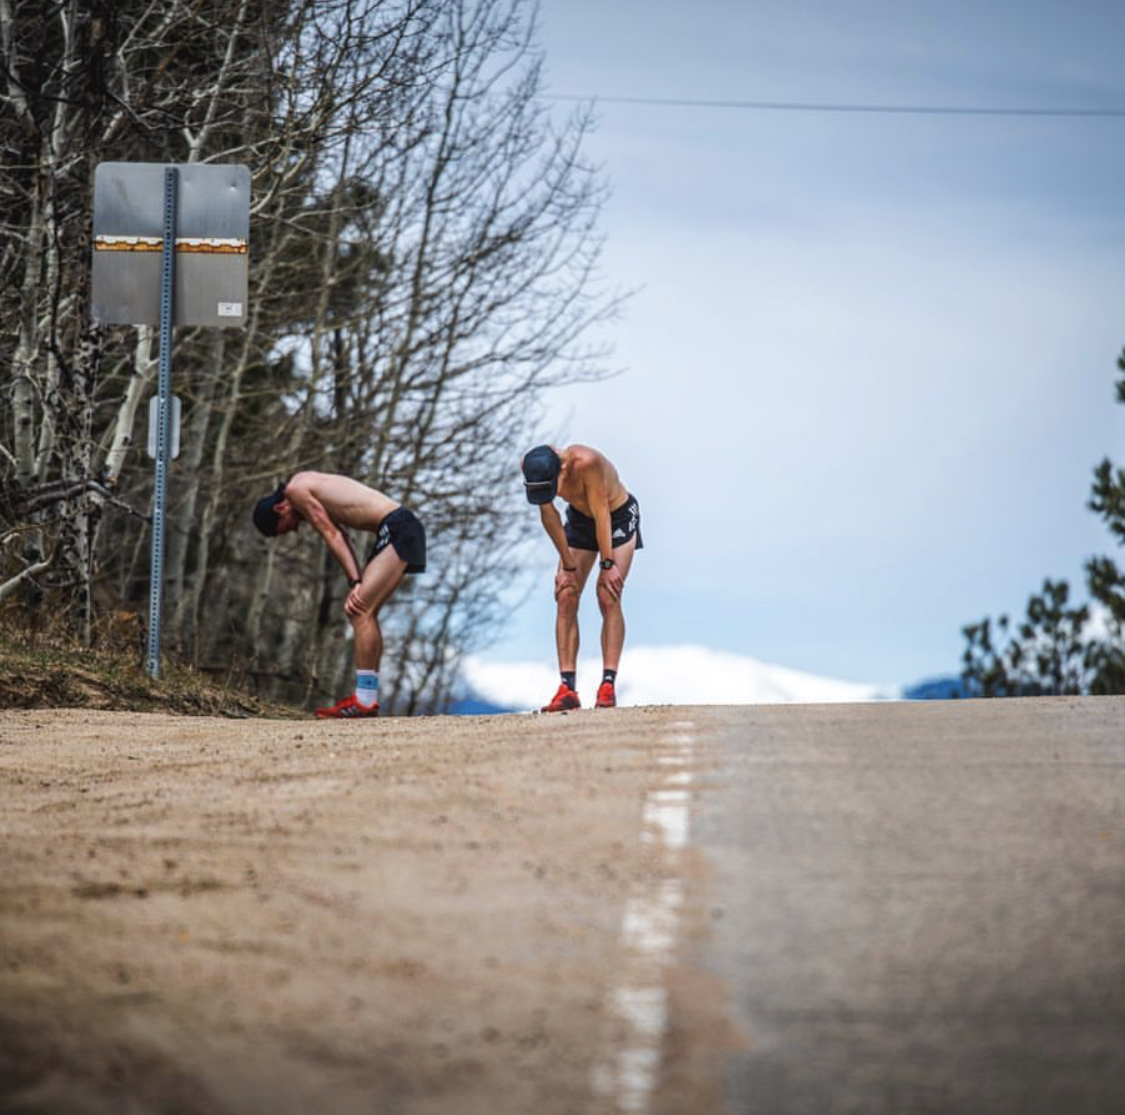 """We all were just so determined to prove ourselves as Tinmen and race competitively at the professional level. We trained hard and didn't focus on any sort of outside distractions."" -"